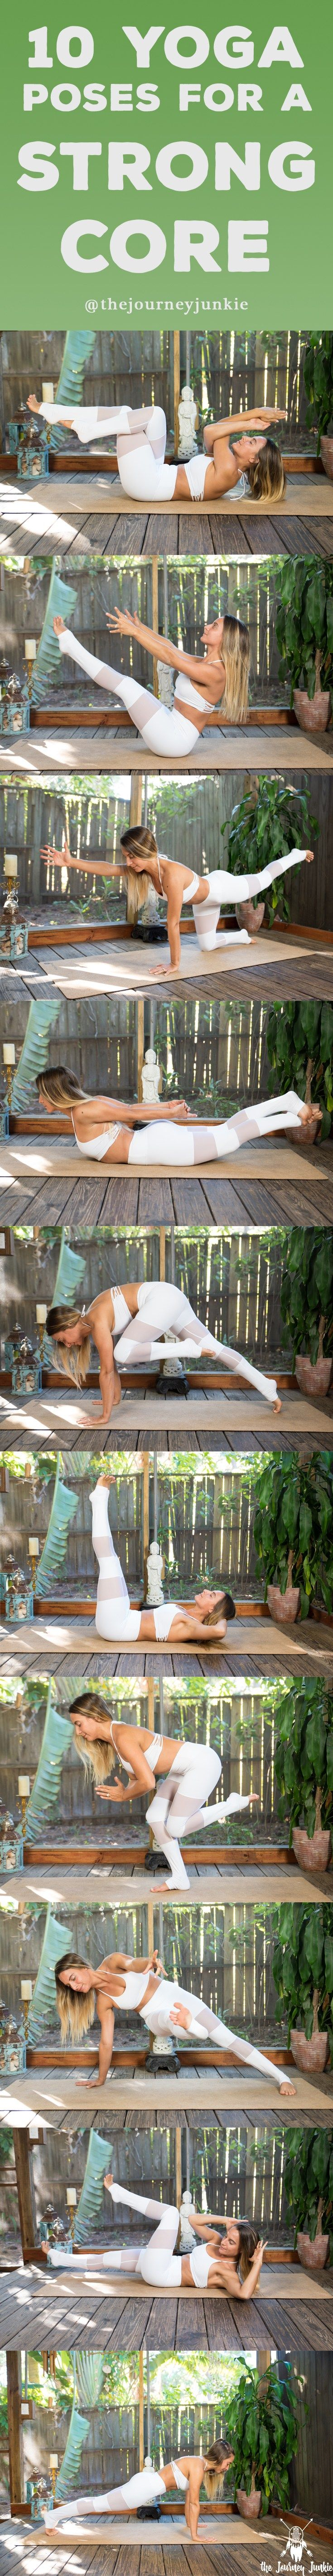 10 Poses for a Strong & Powerful Core - Pin now, work on your core strength now!